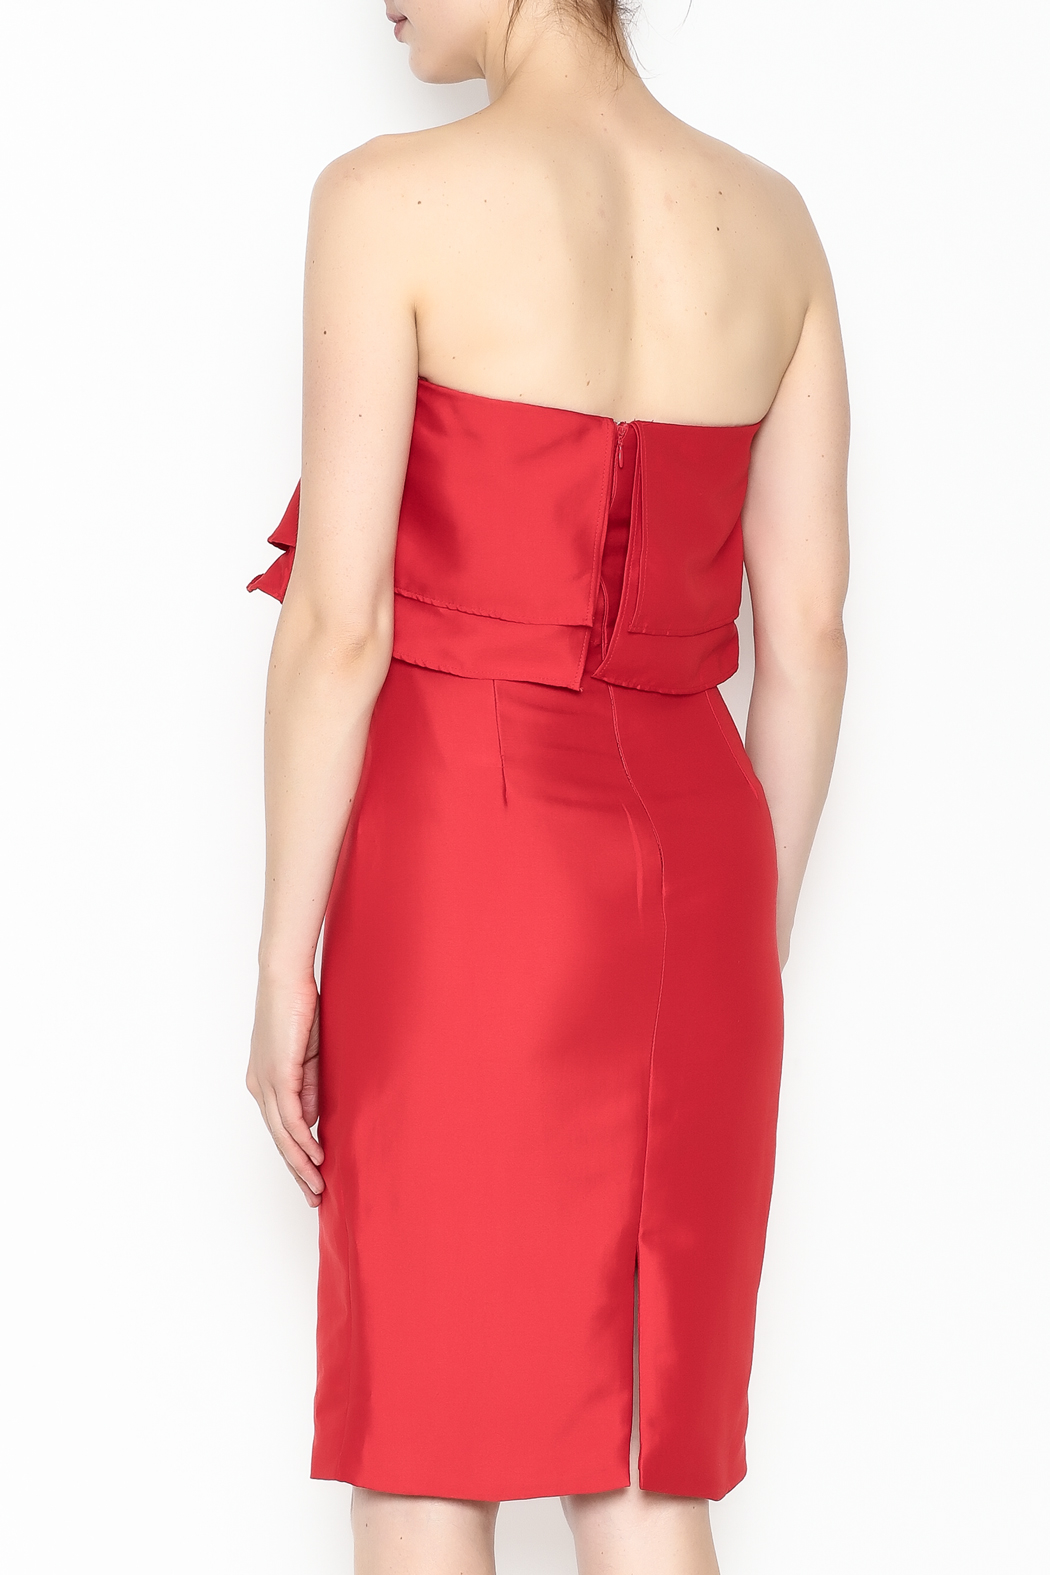 Do-Be Ruffle Strapless Dress - Back Cropped Image